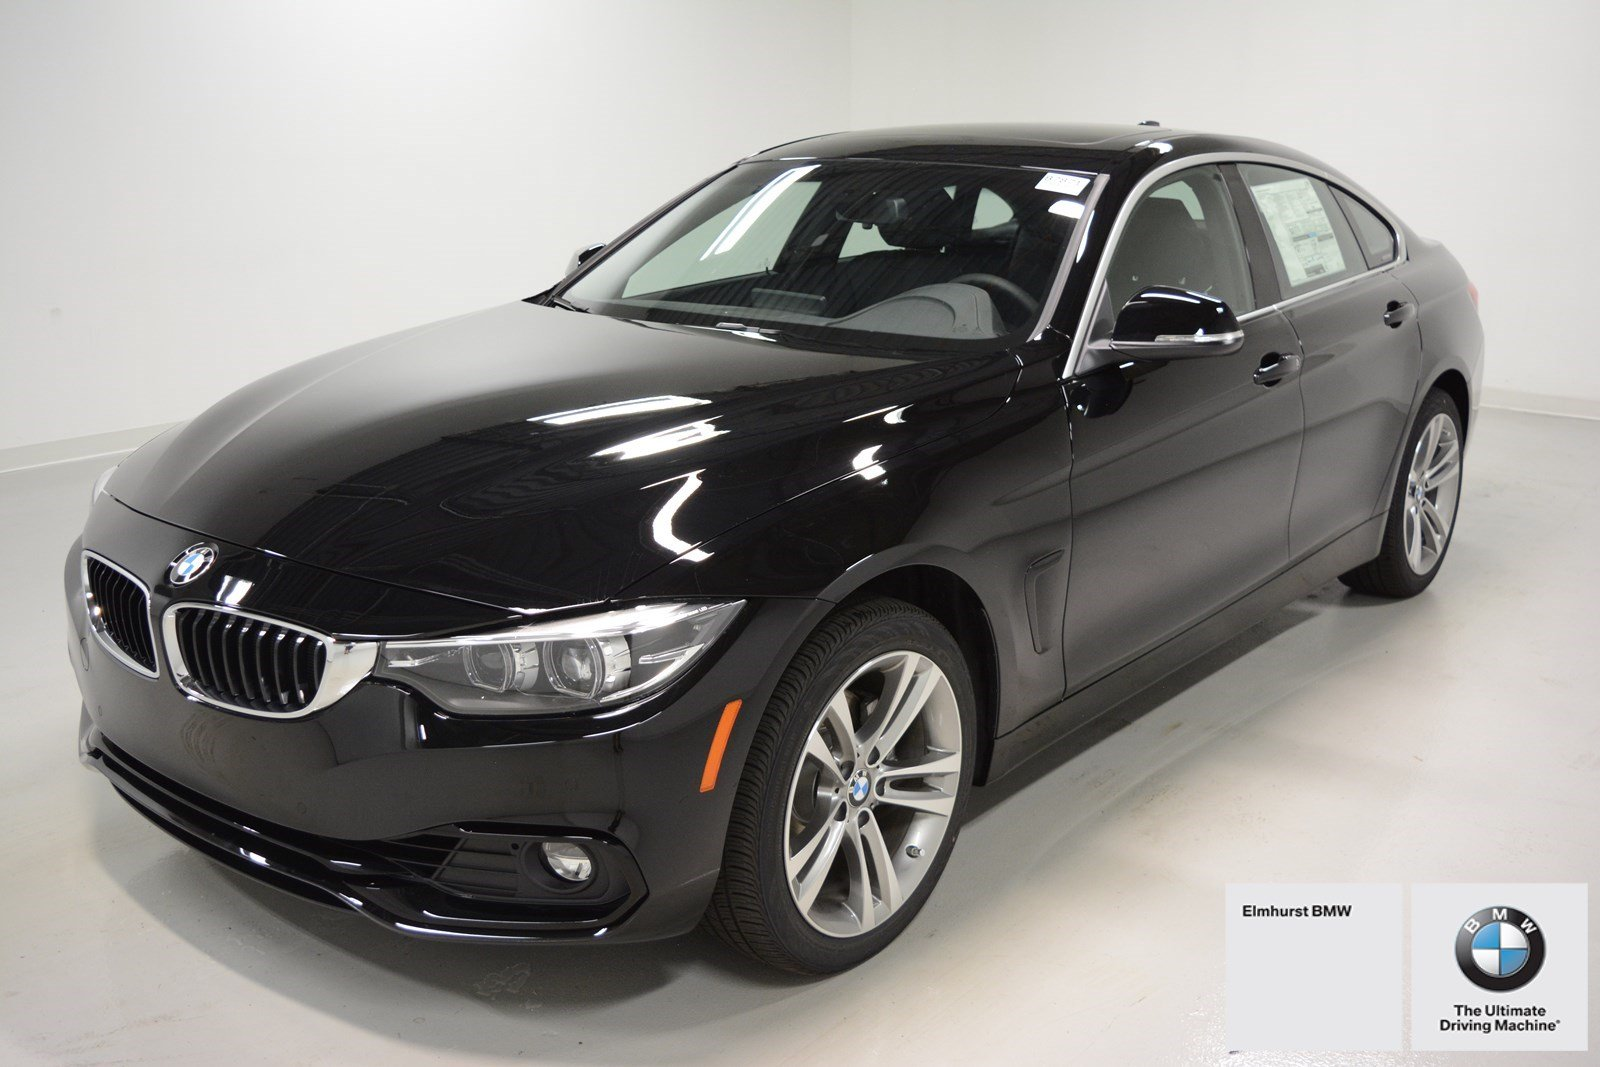 pre owned 2018 bmw 4 series 430i xdrive gran coupe hatchback in elmhurst b7871 elmhurst bmw. Black Bedroom Furniture Sets. Home Design Ideas